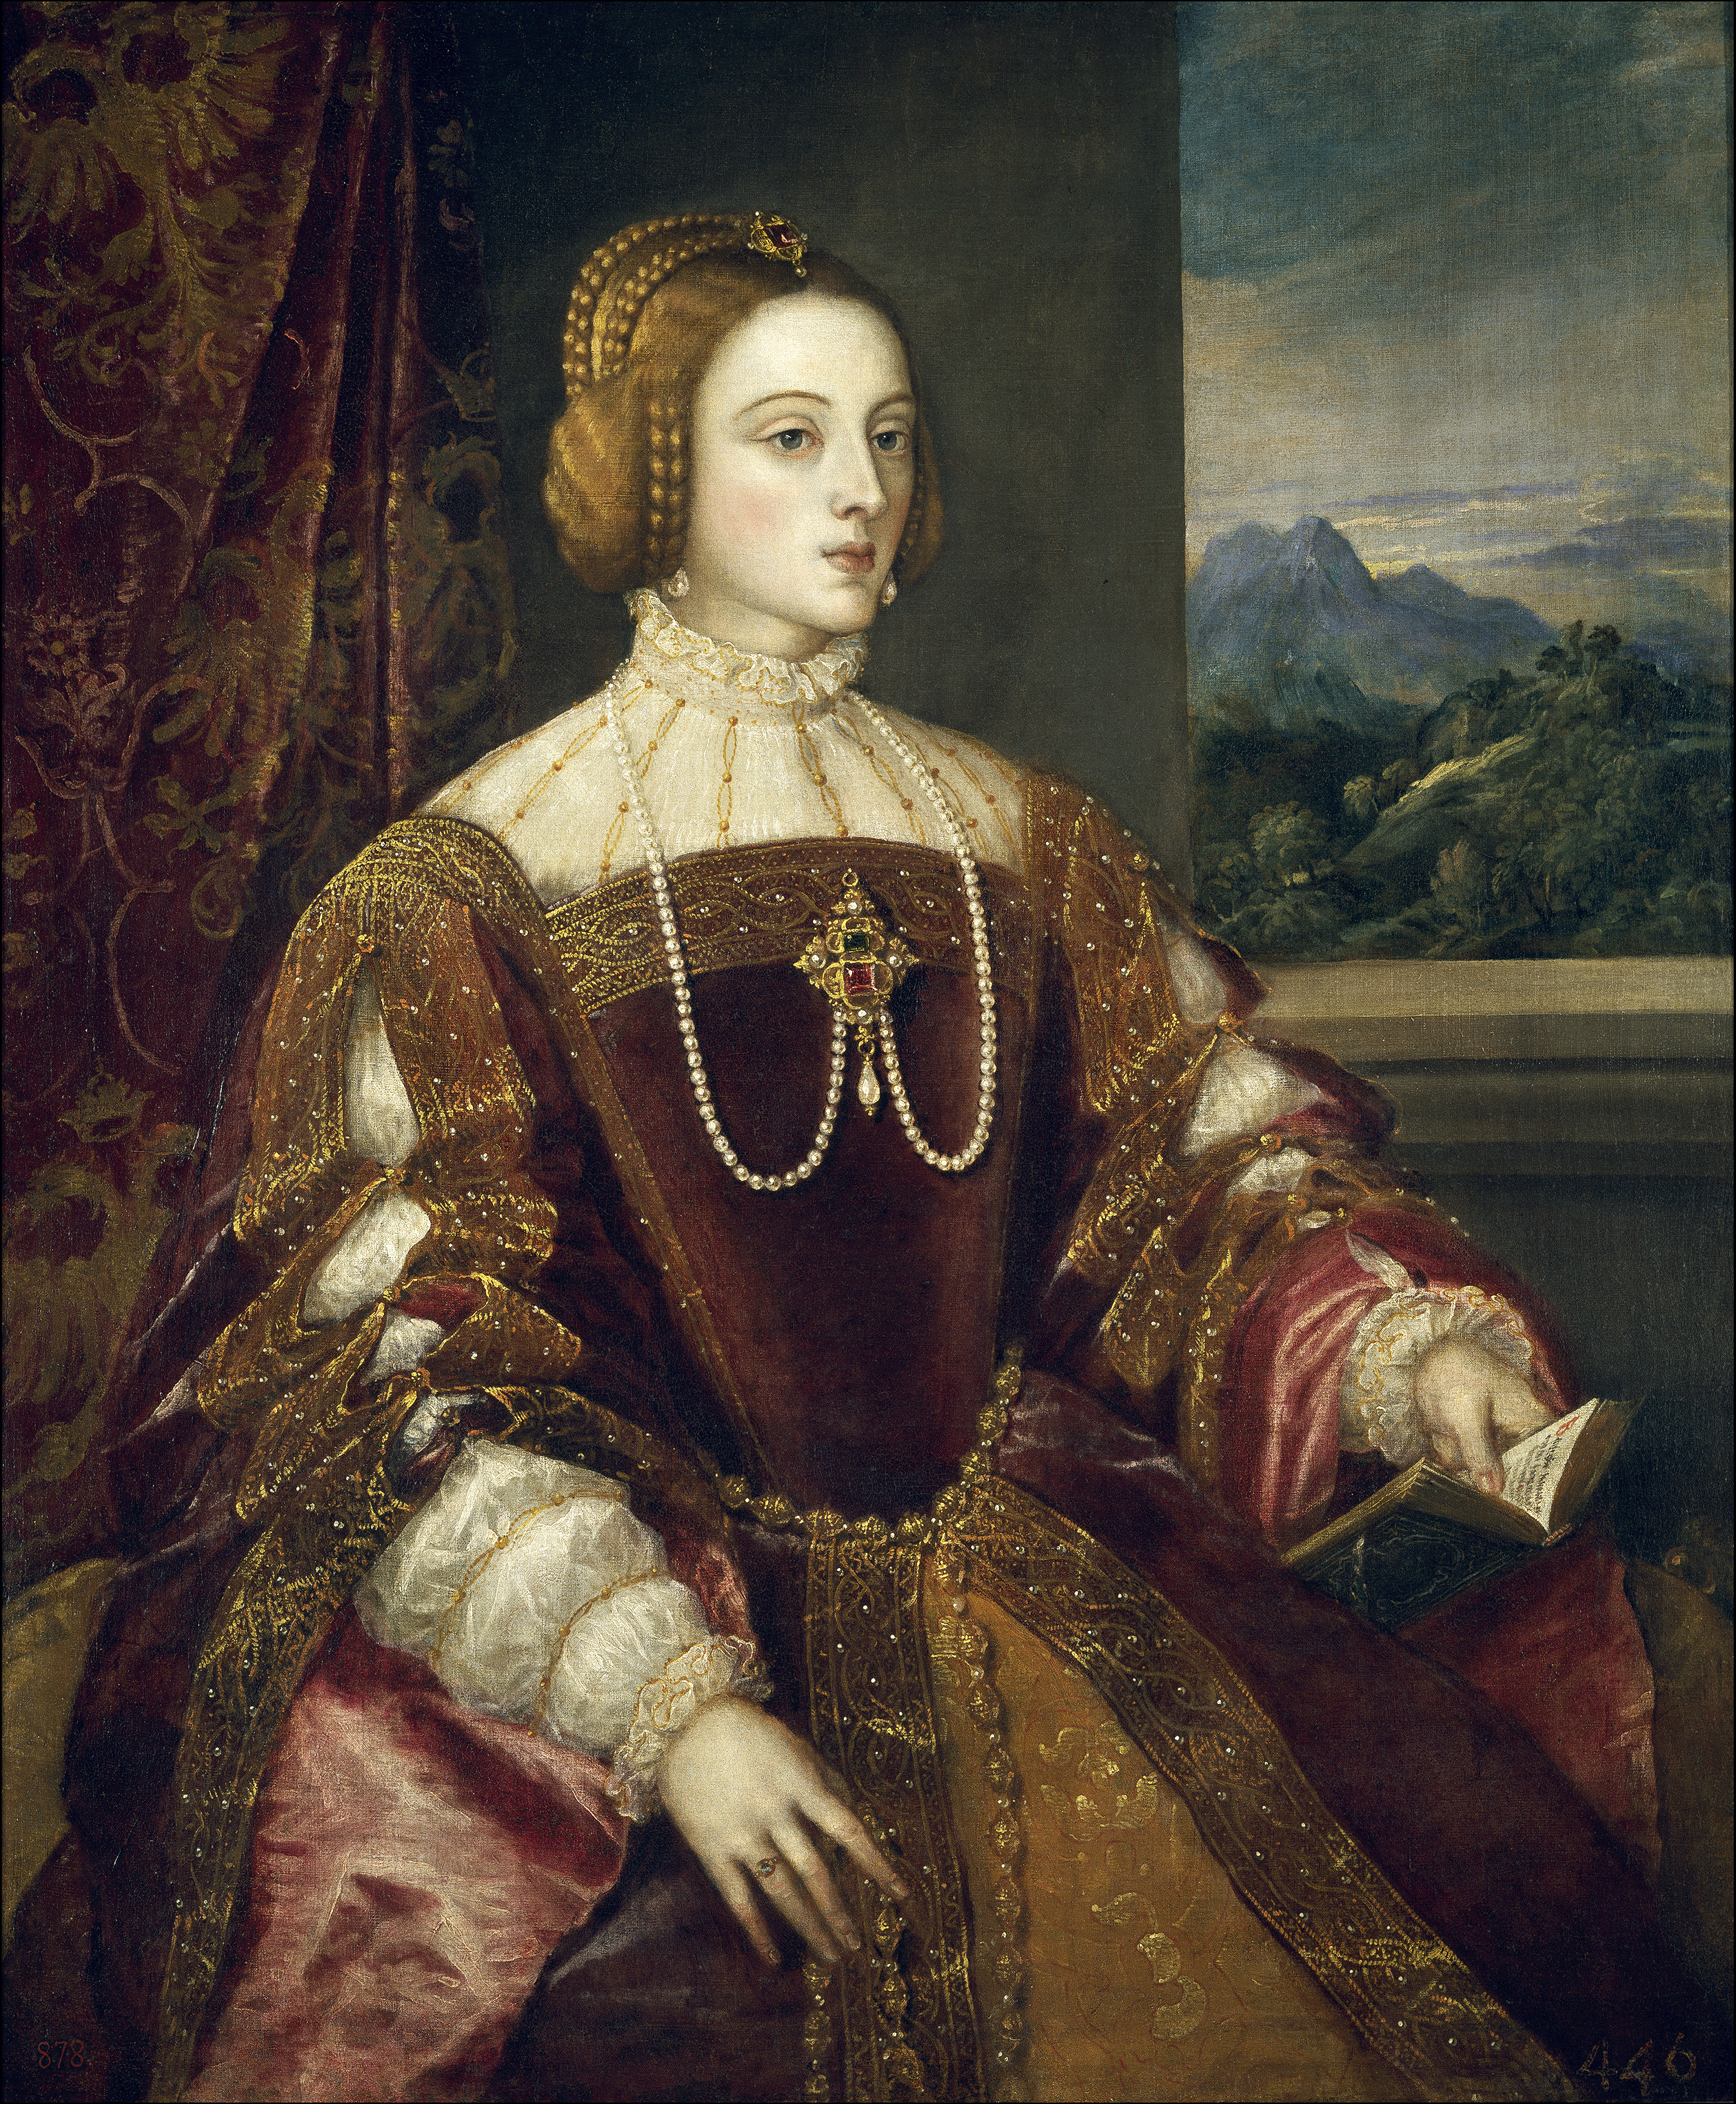 Isabella_of_Portugal_by_Titian.jpg